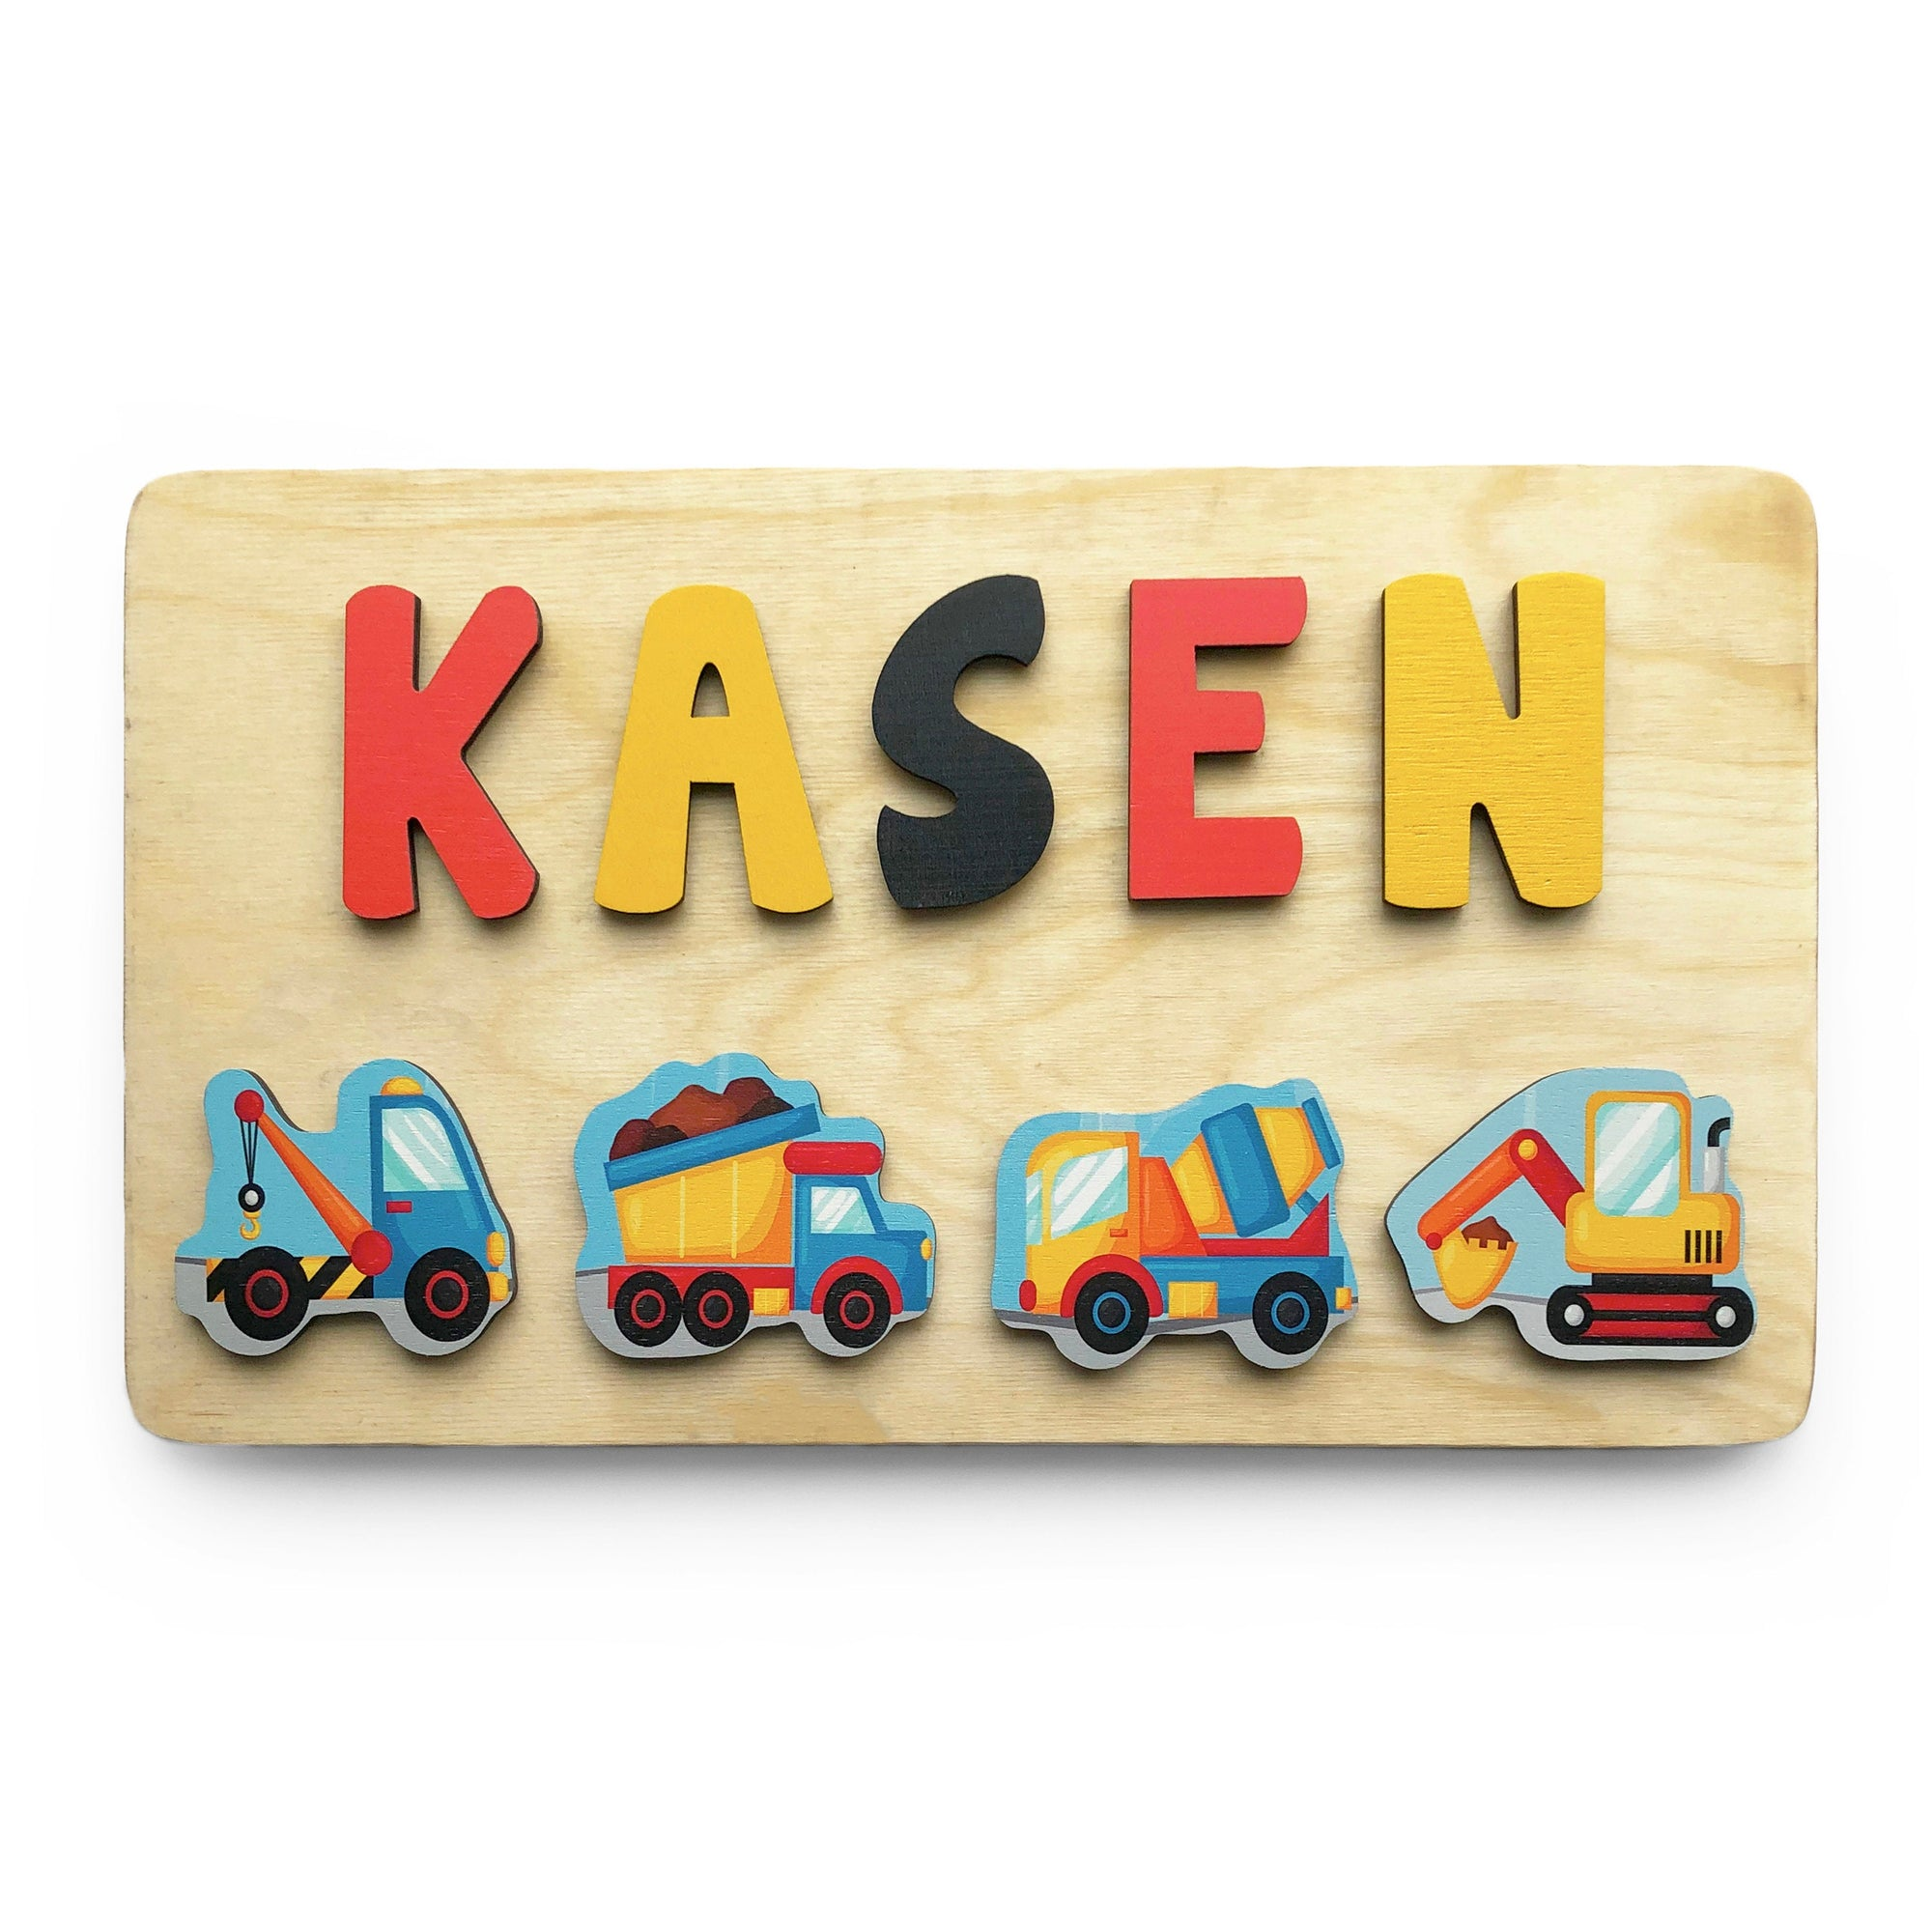 Construction Wooden Name Puzzle, Gift for Boy, Construction Birthday Party, Easter Basket Filler